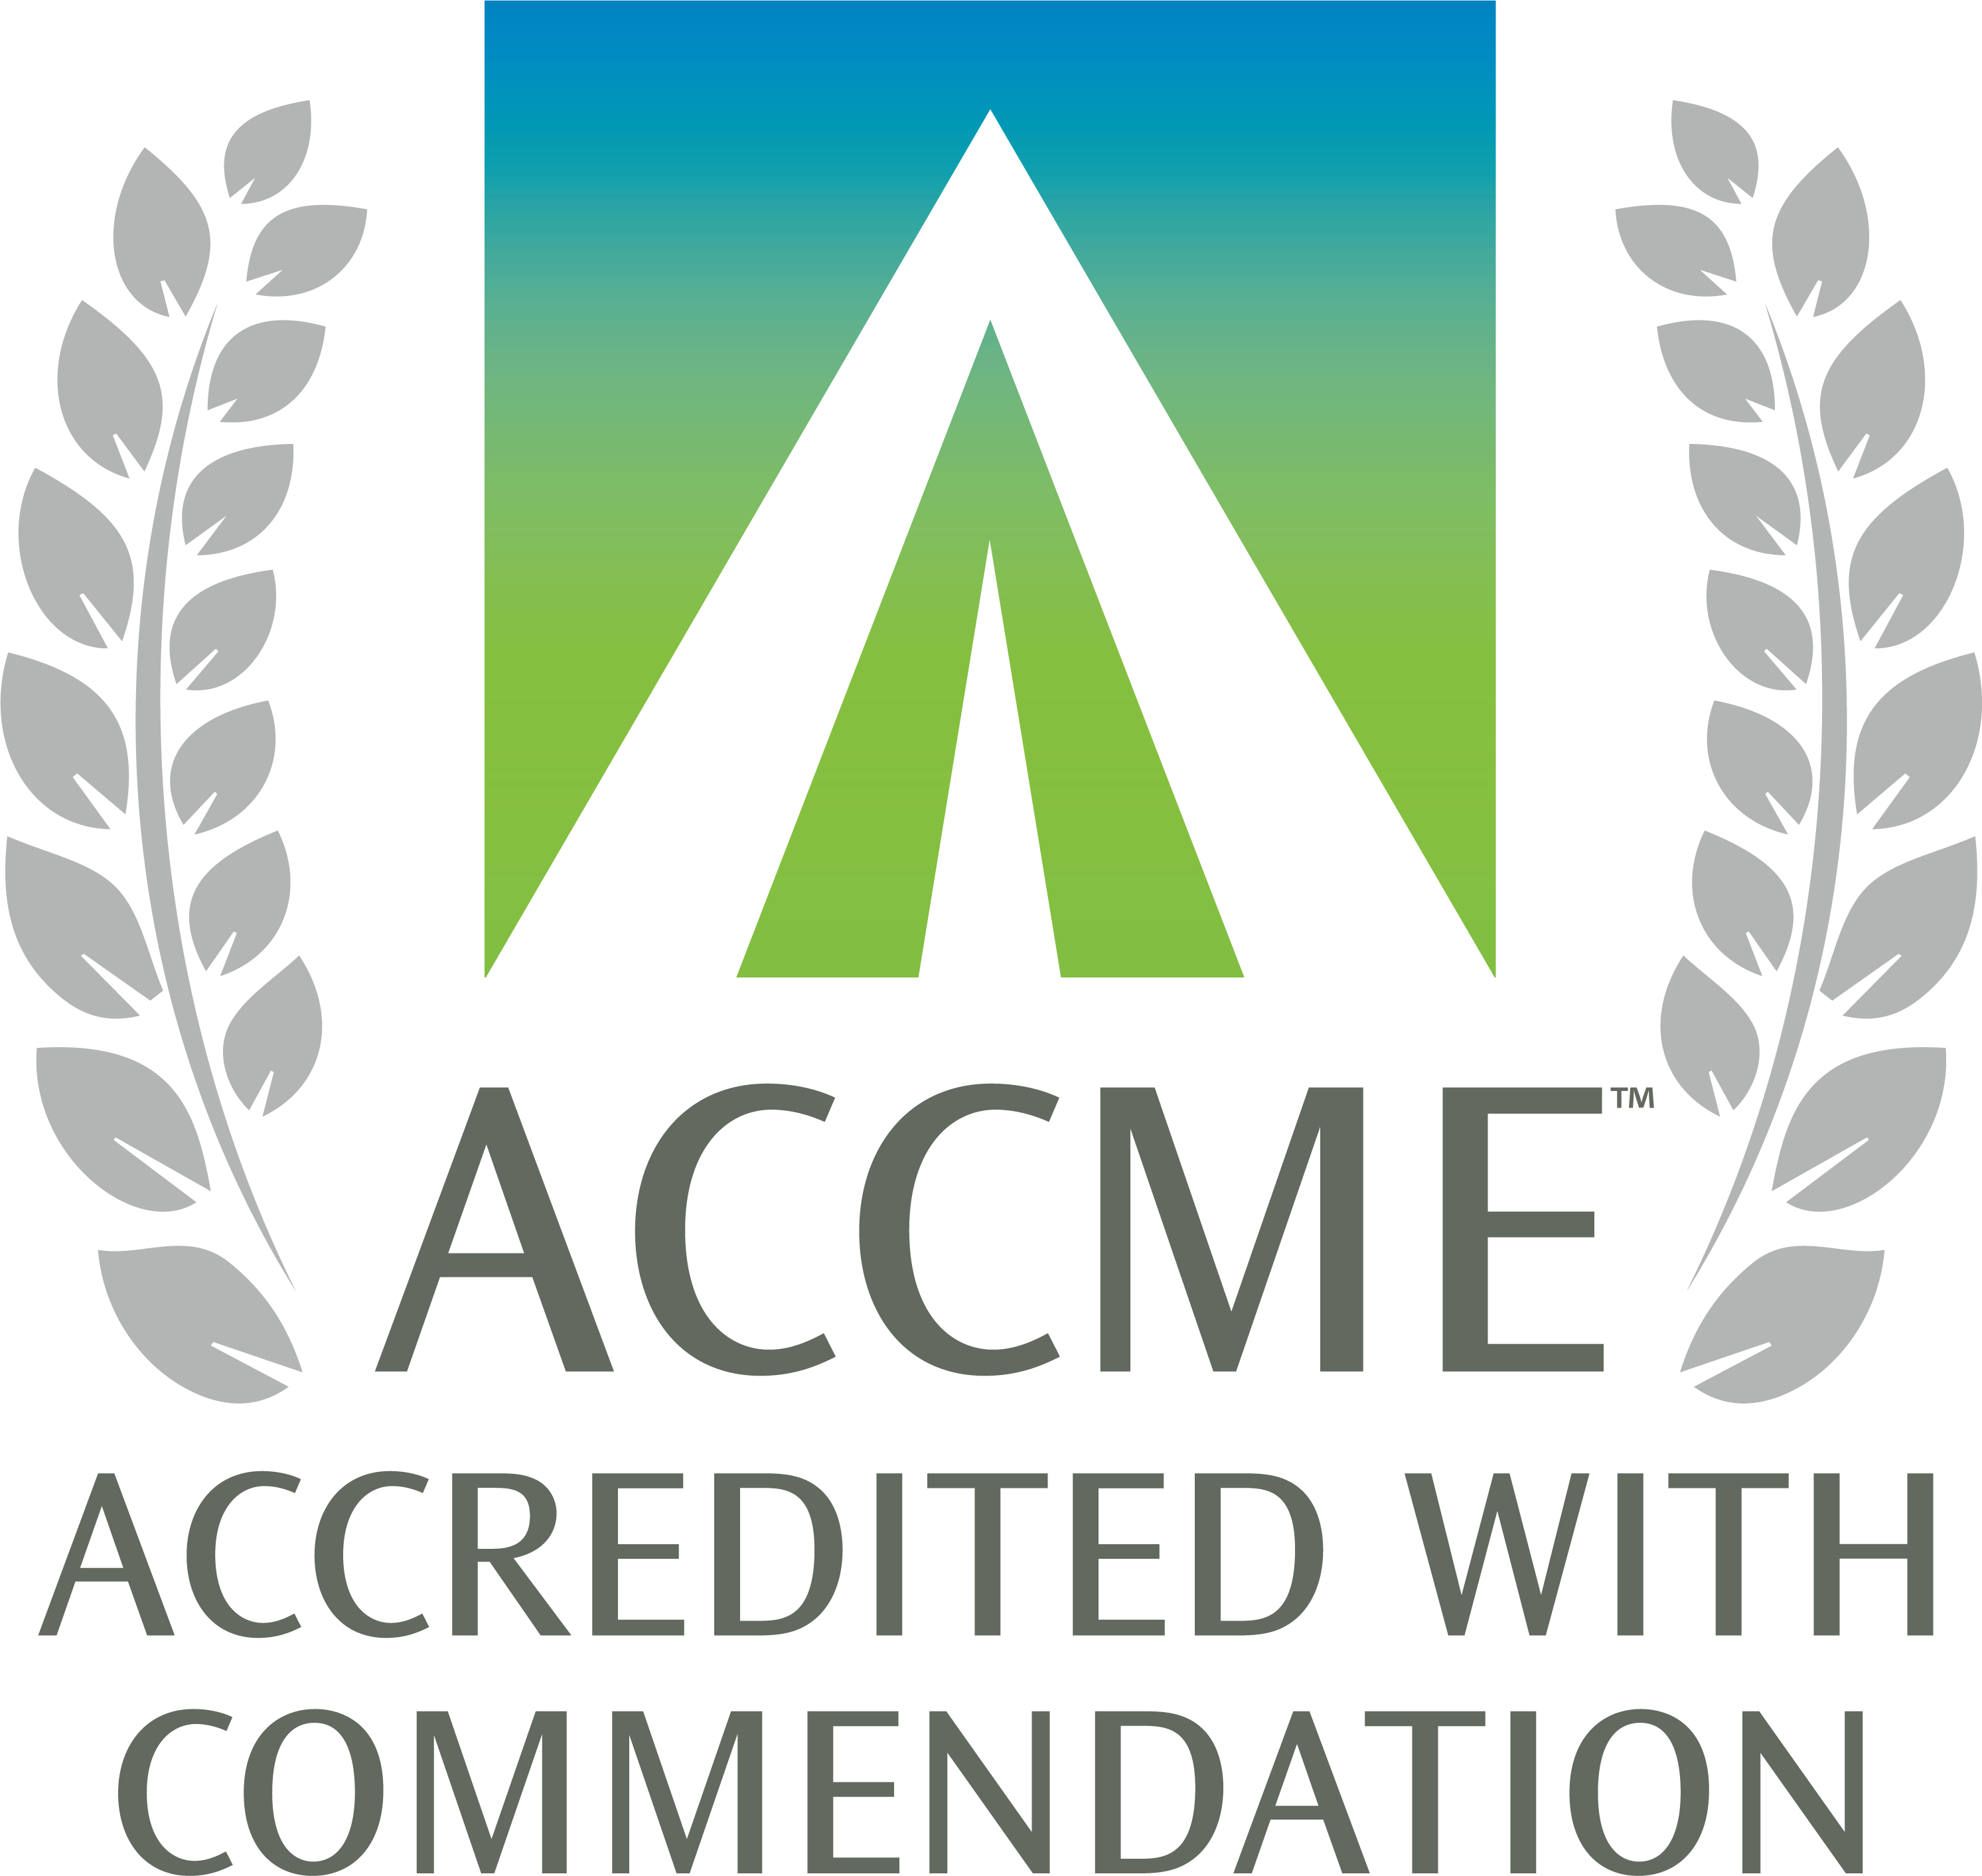 ACCME commendation full color